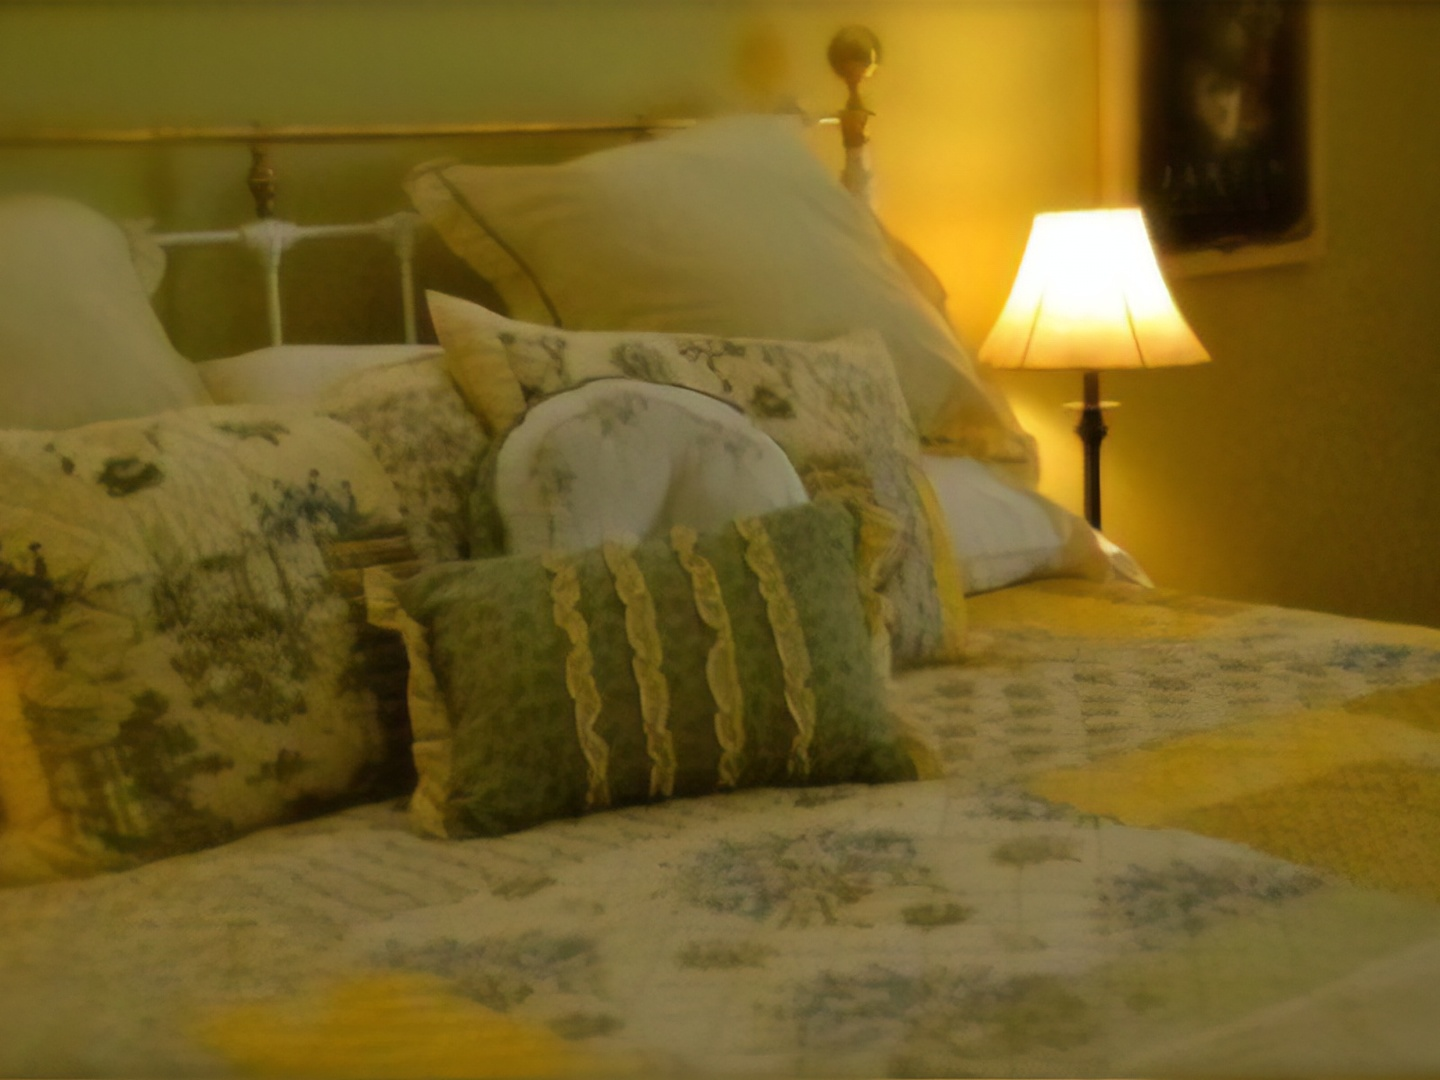 A bedroom with a bed and a lamp in a room at Longview Farms Bed & Breakfast Carriage House.